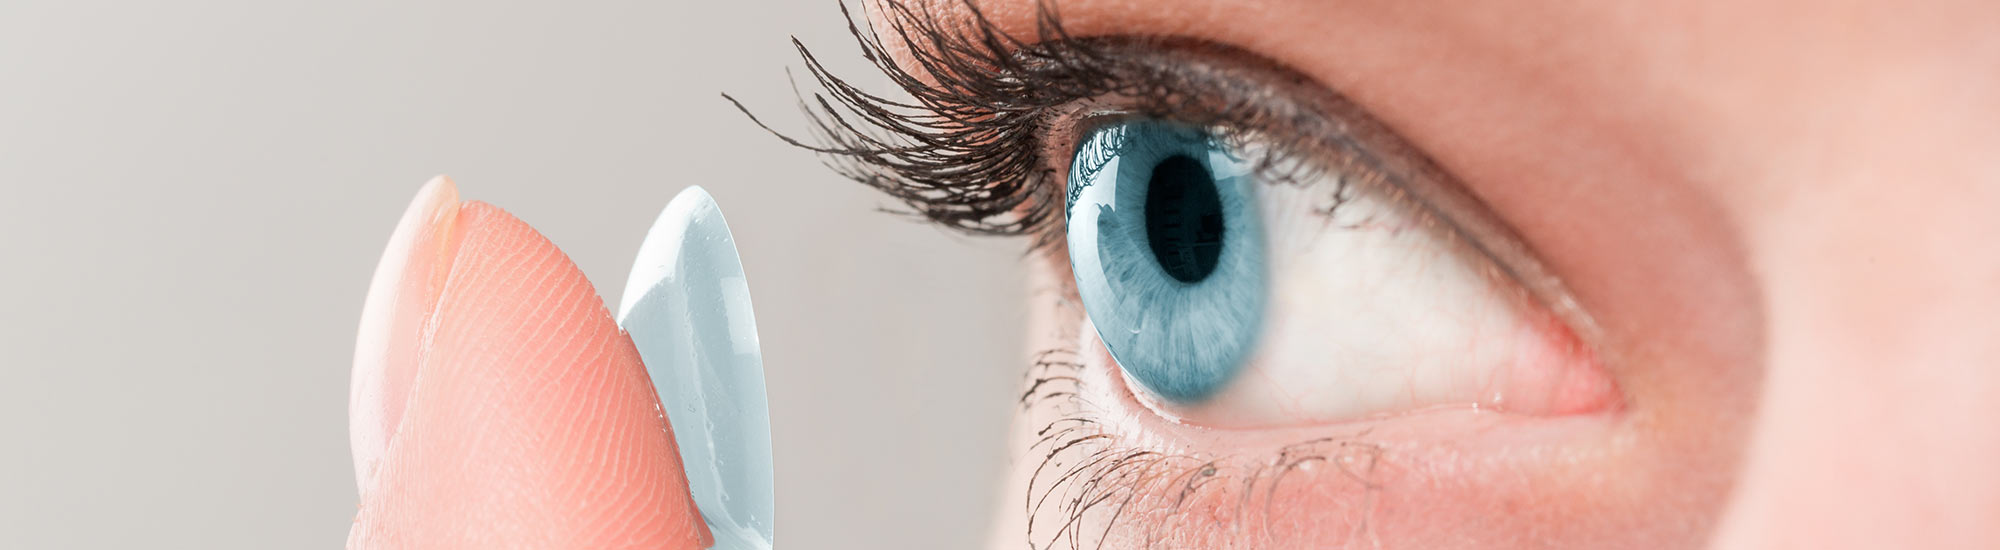 Get your contact lense prescription through Vestavia Eye Care